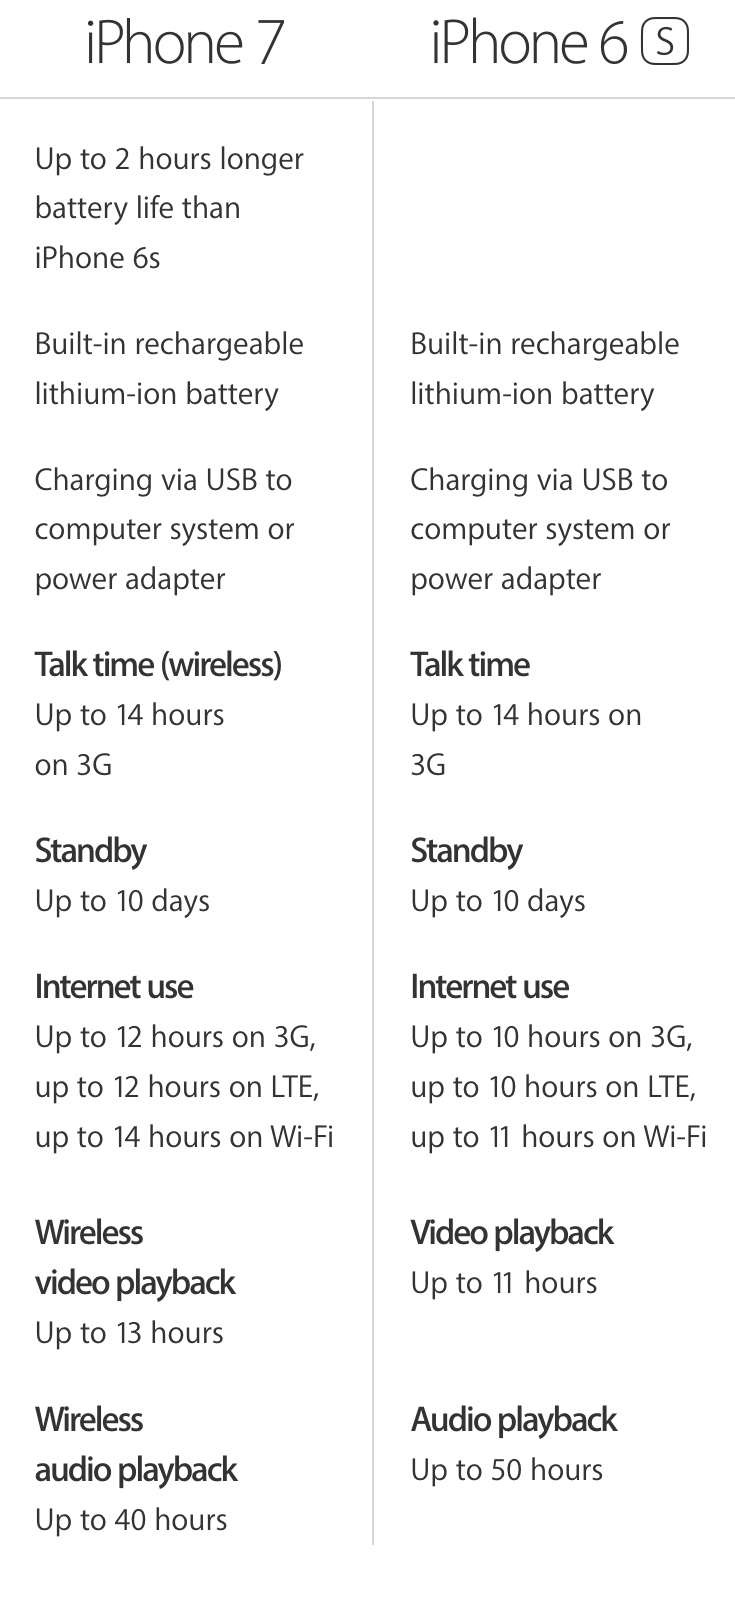 iPhone 6s vs iPhone 7 battery life